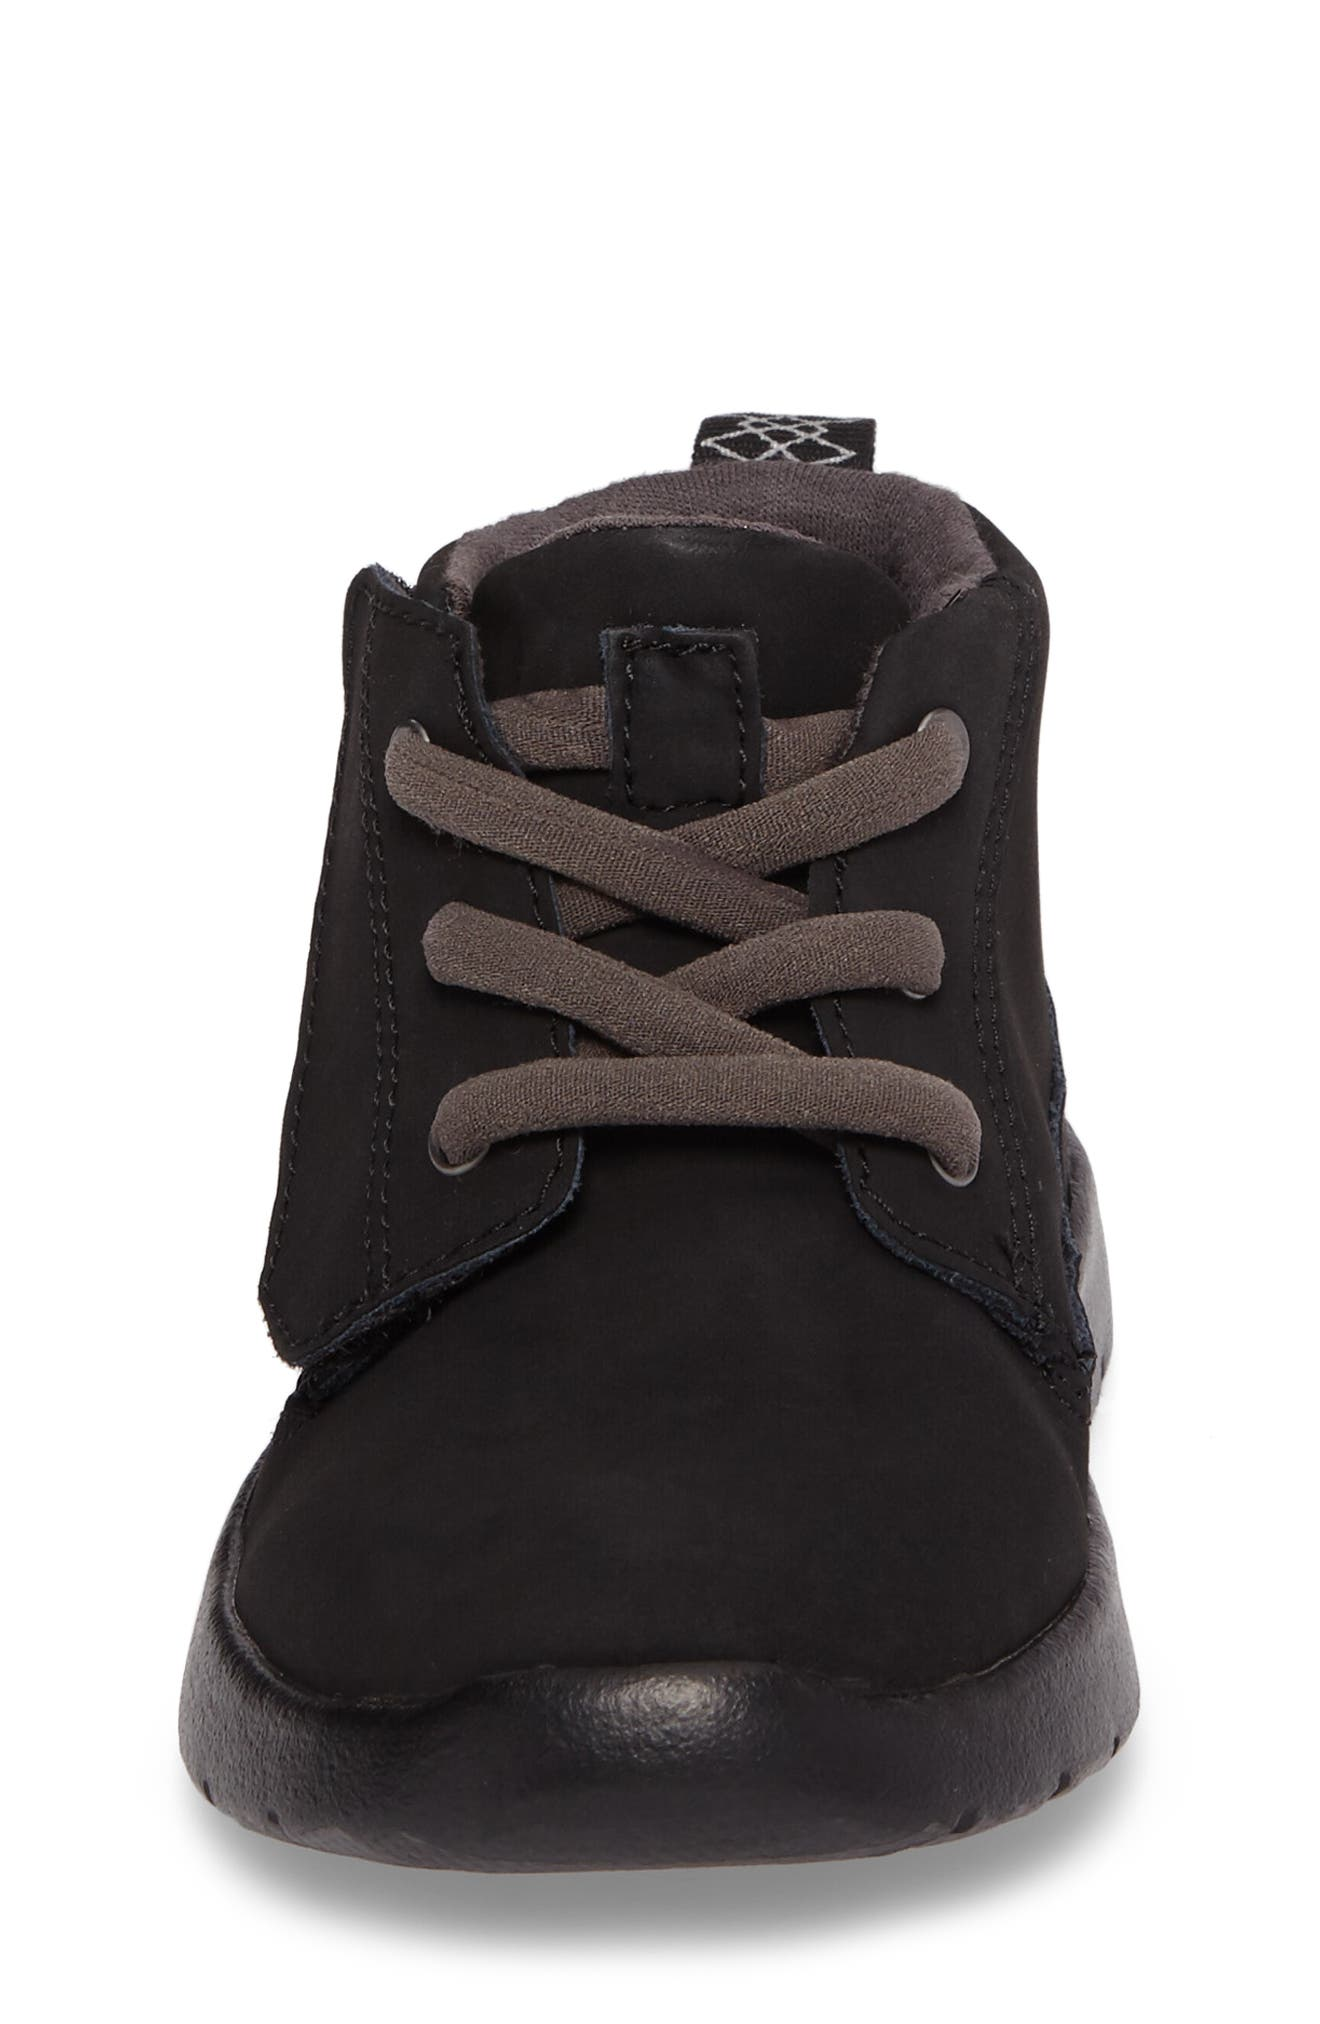 Canoe Water-Resistant Bootie,                             Alternate thumbnail 4, color,                             001